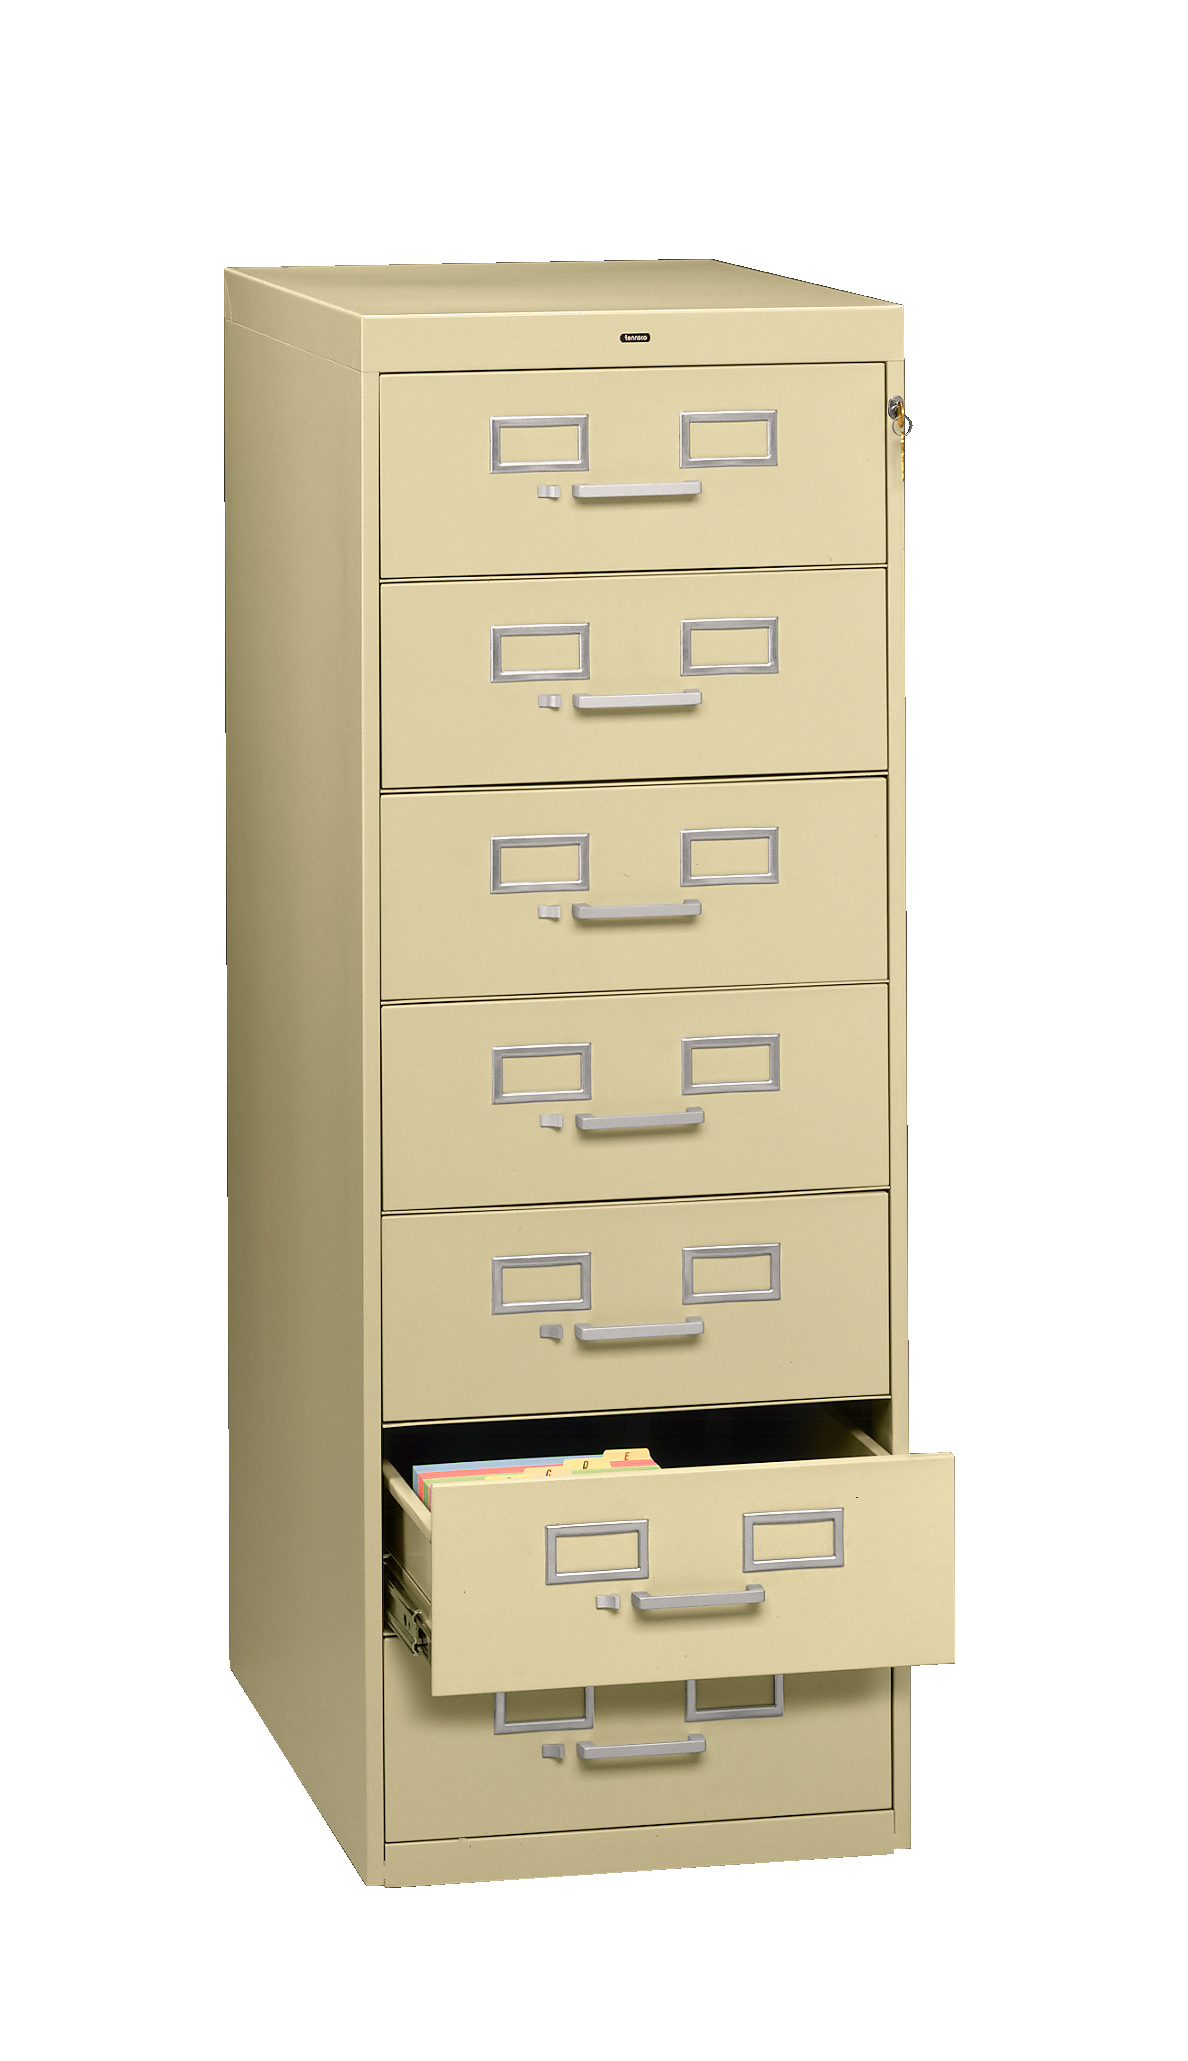 Tennsco - Storage Made Easy - 7 Drawer Card File